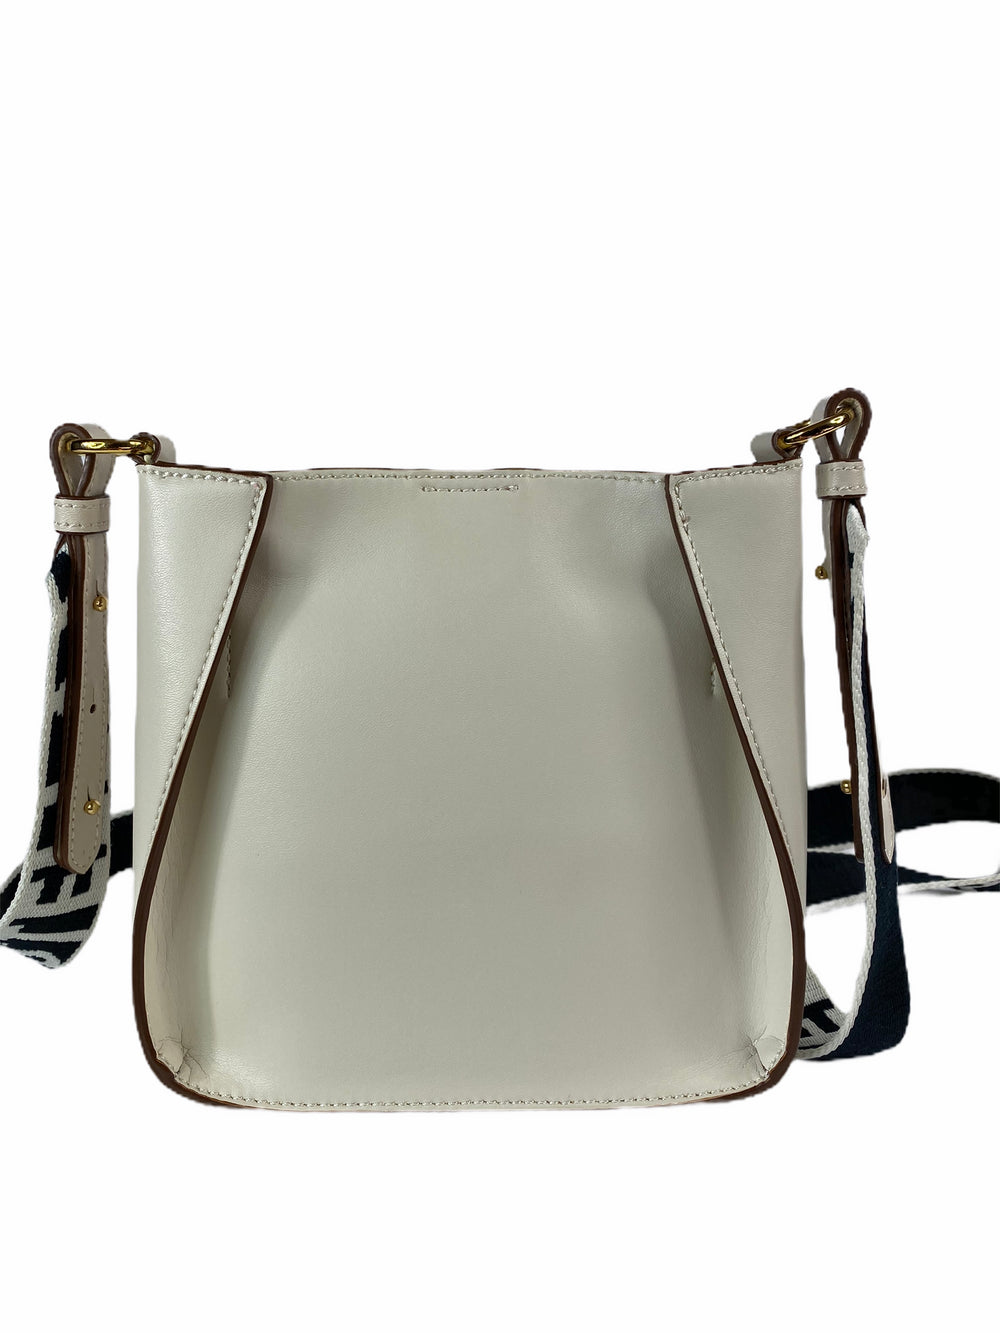 Stella McCartney Cream Faux Leather Crossbody - As Seen on Instagram 26/08/2020